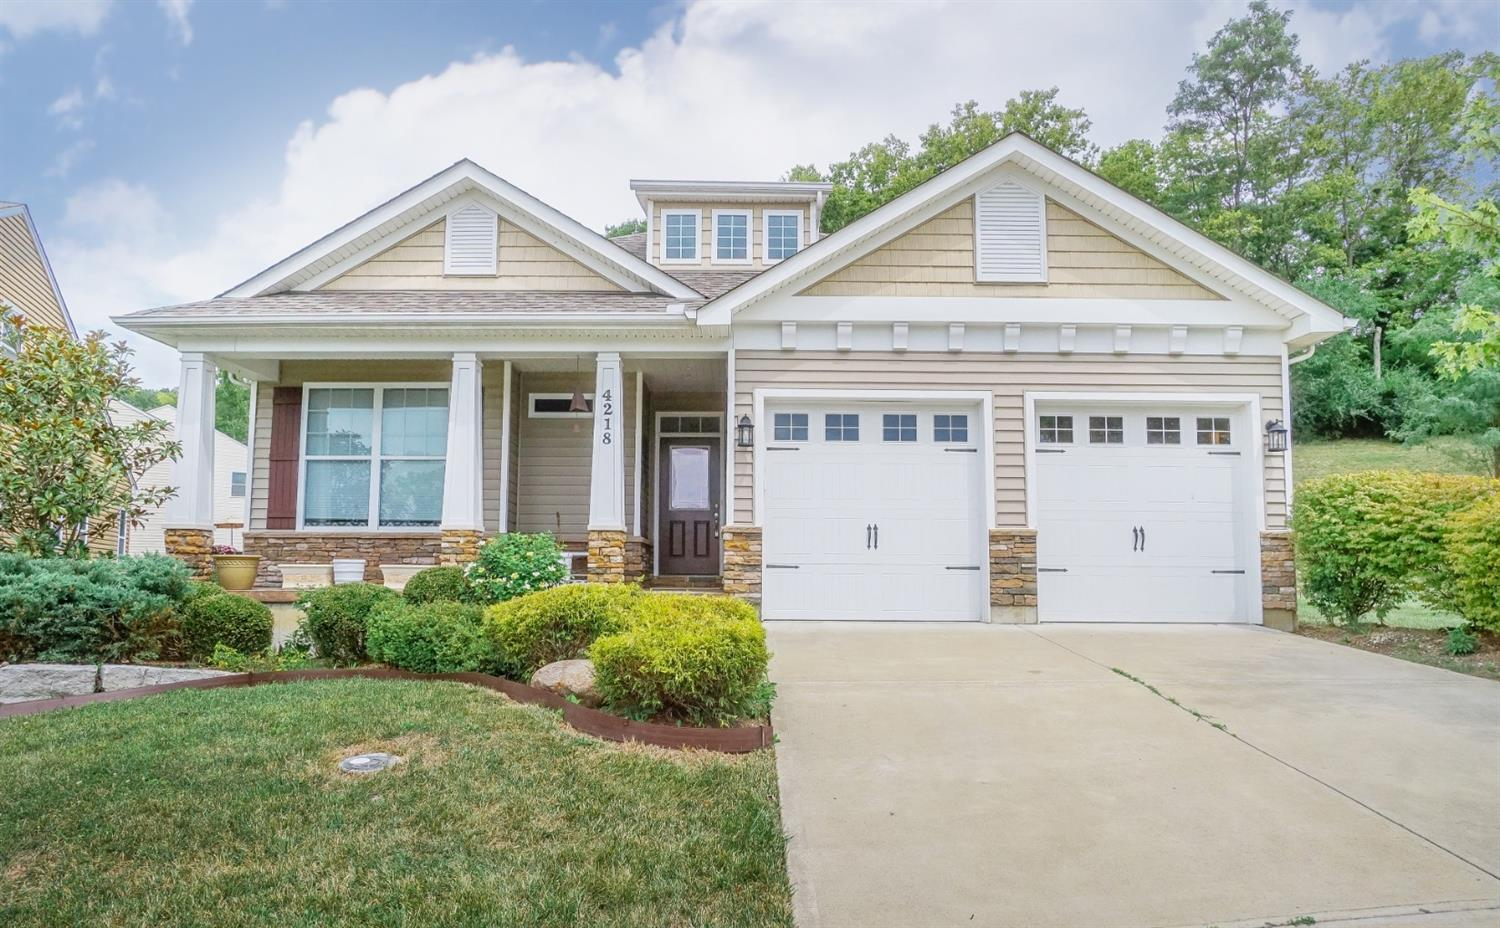 4218 Badgeley Cir Cincinnati OH